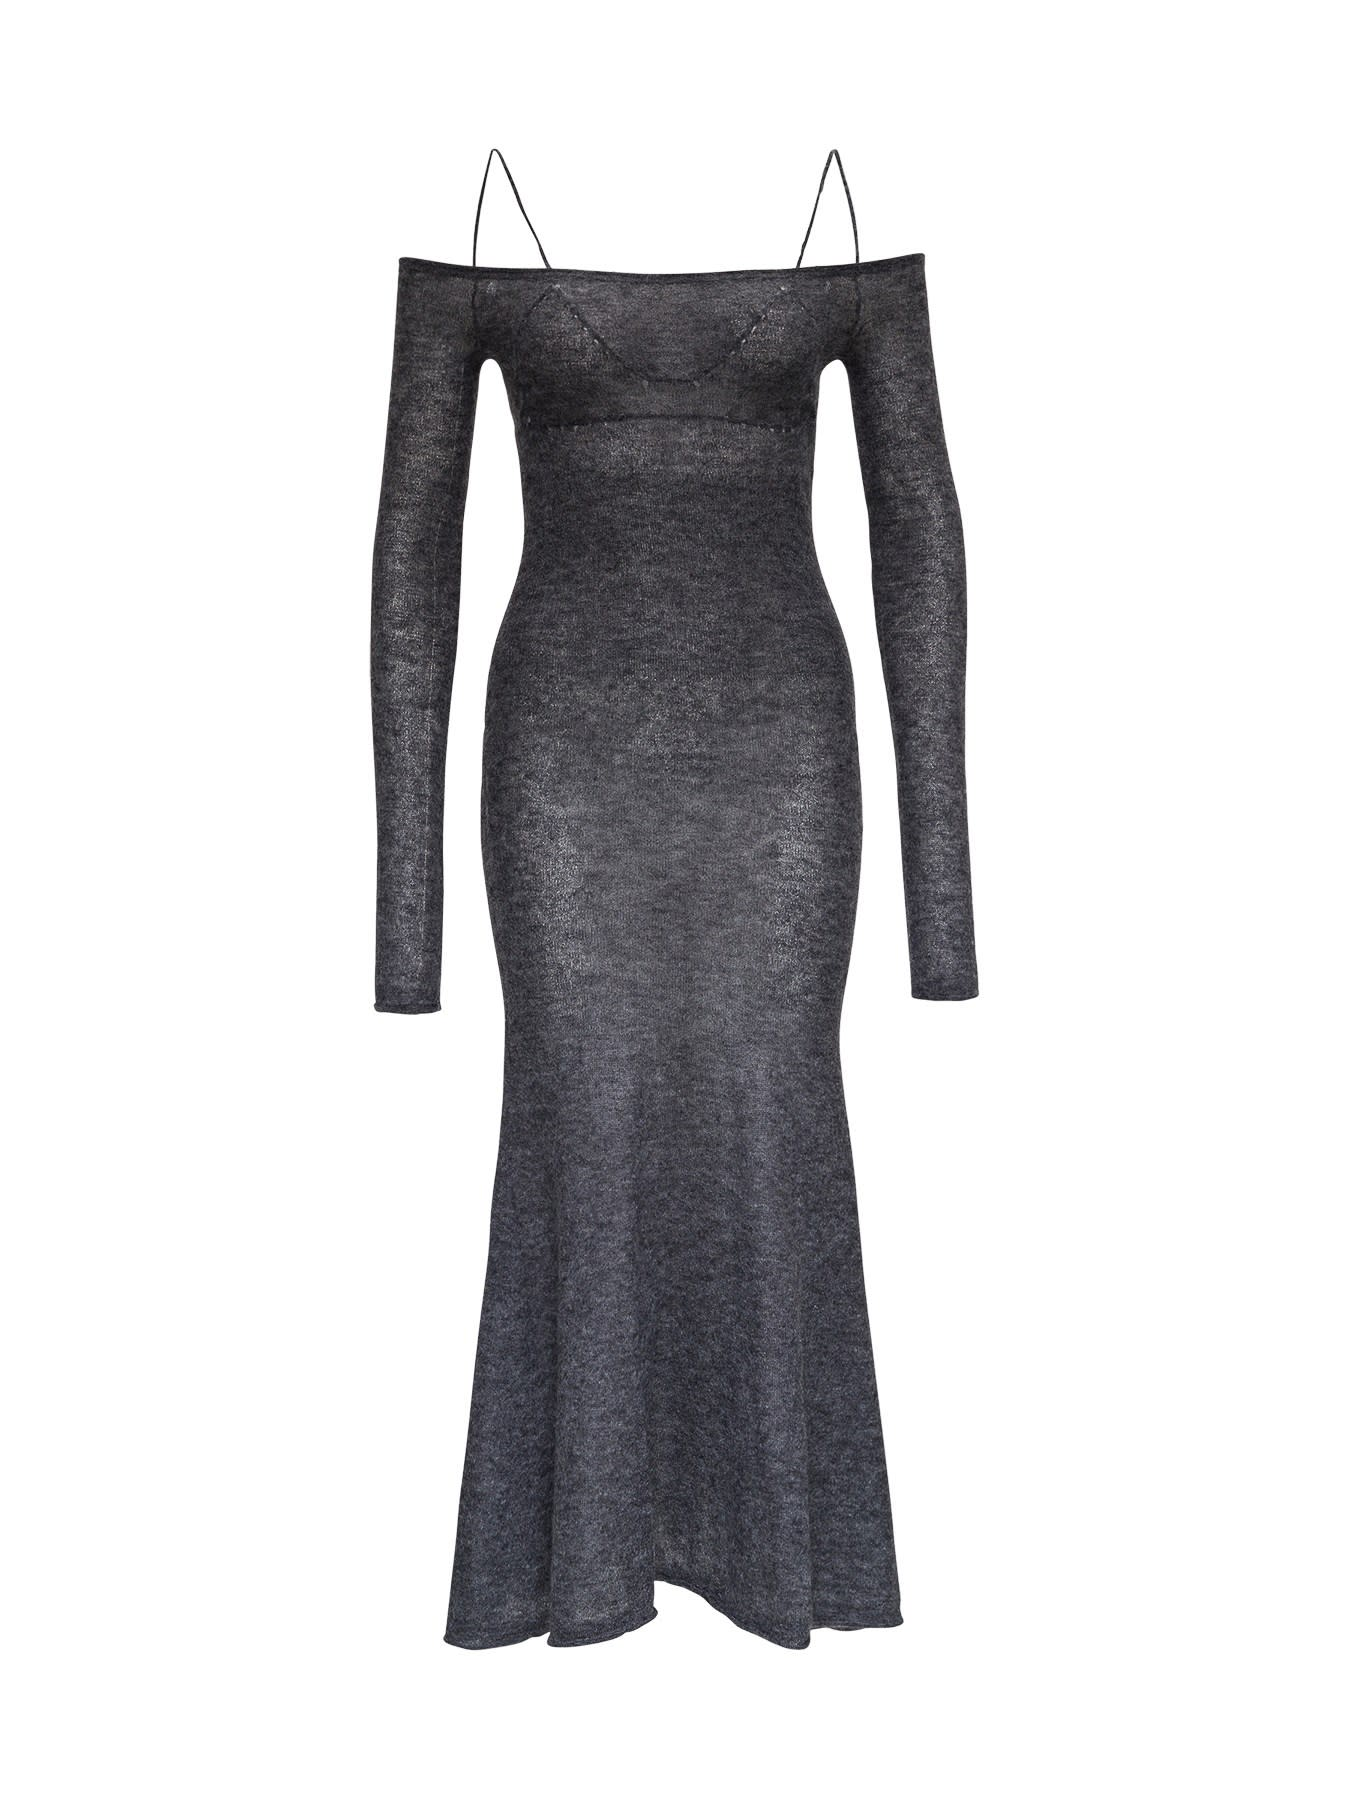 Jacquemus LA ROBE MAILLE KNITTED DRESS IN WOOL AND MOHAIR BLEND